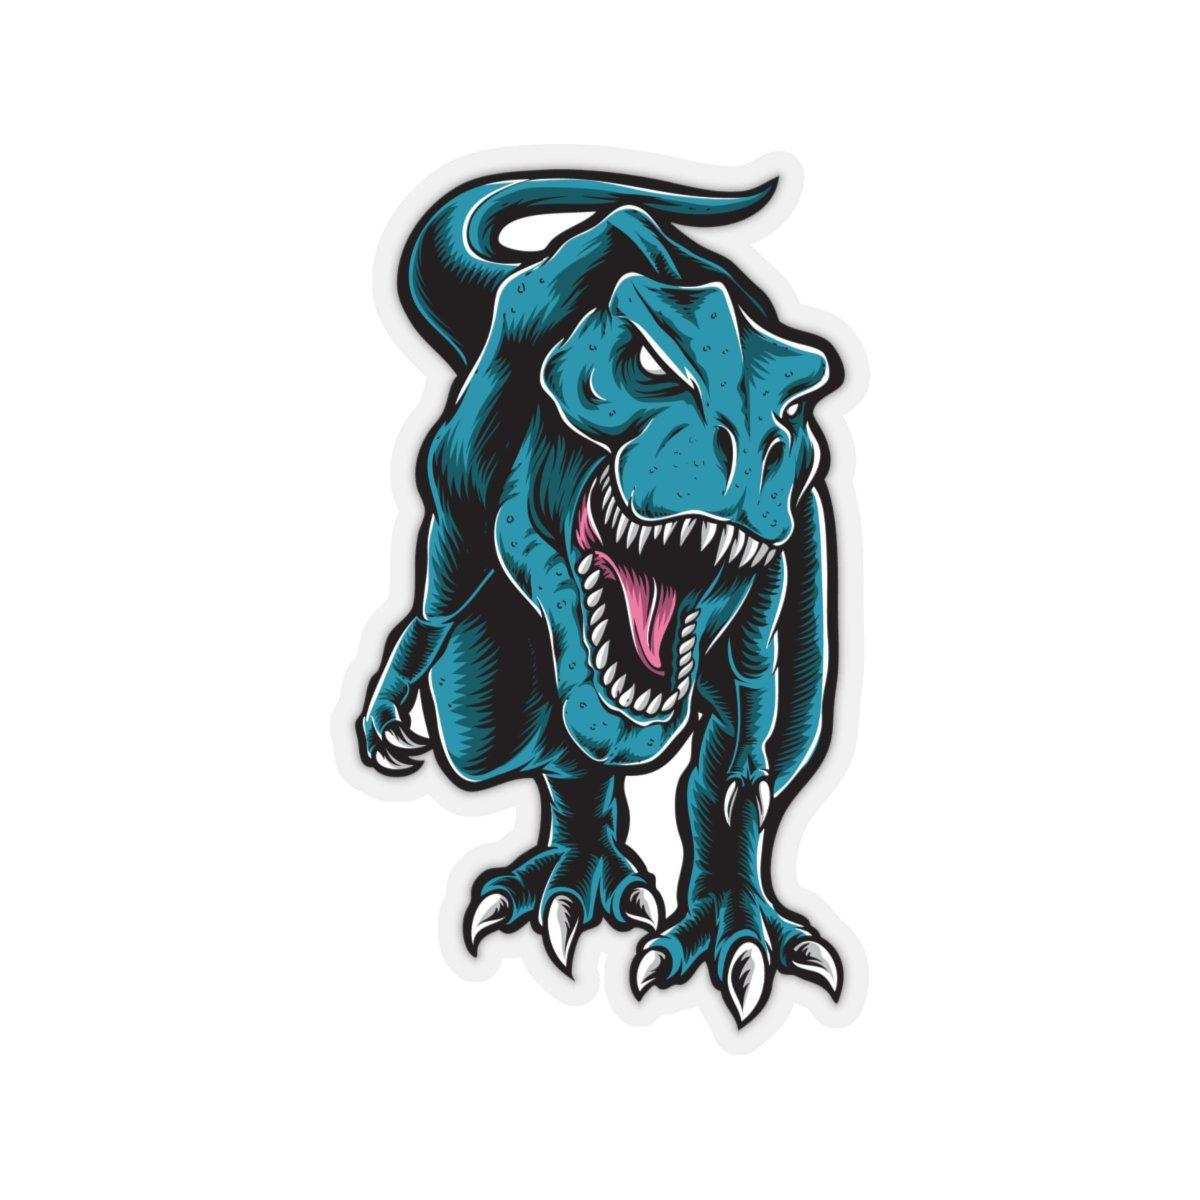 A dinosaur sticker of an angry t-rex. This t-rex sticker is extremely fierce and aggressive.